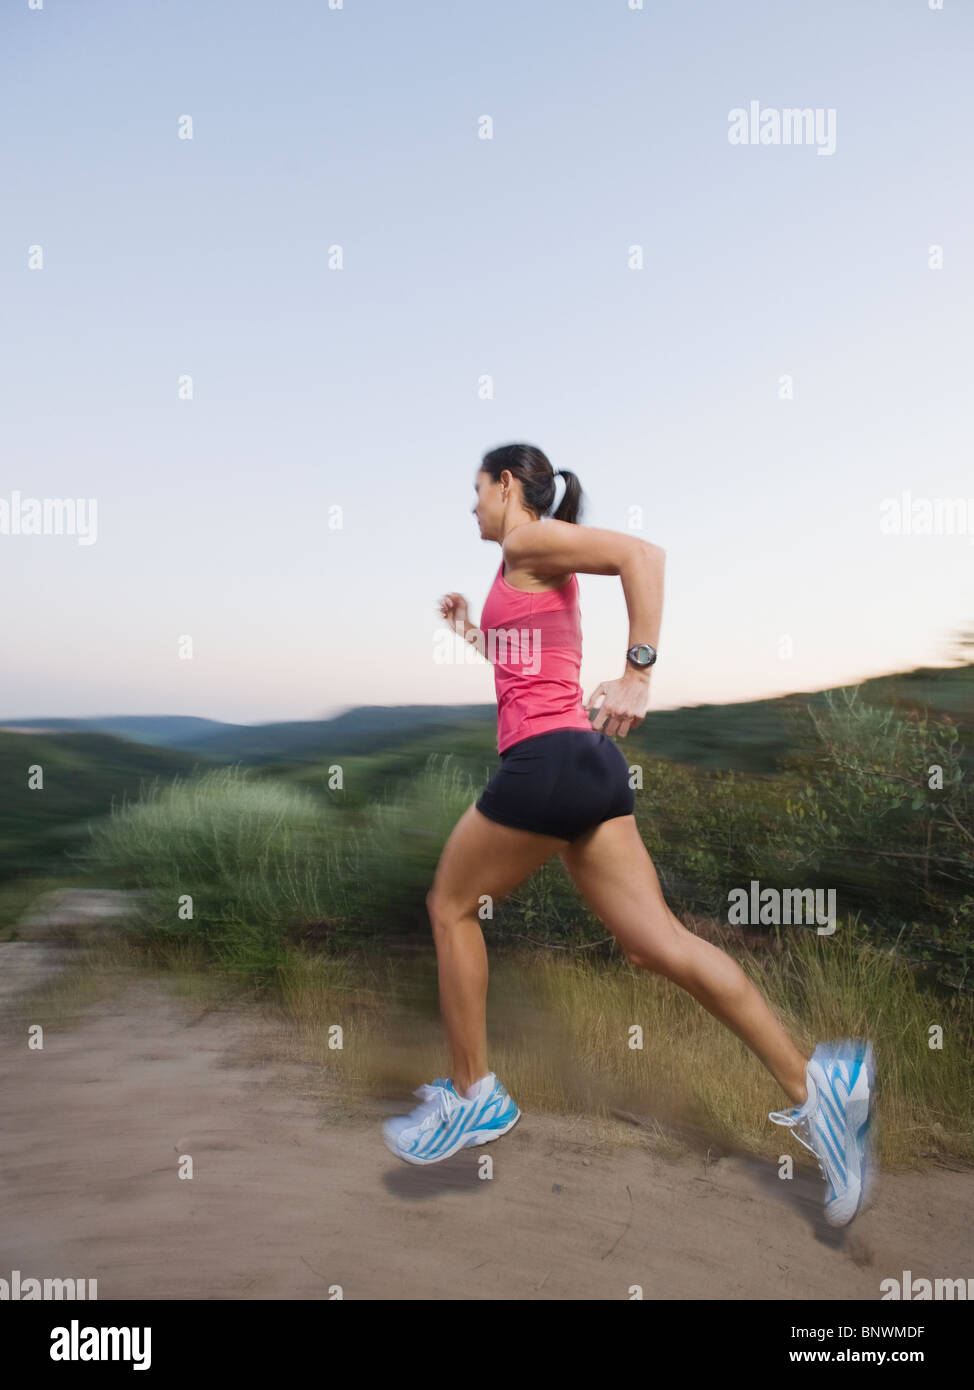 Trail runner - Stock Image